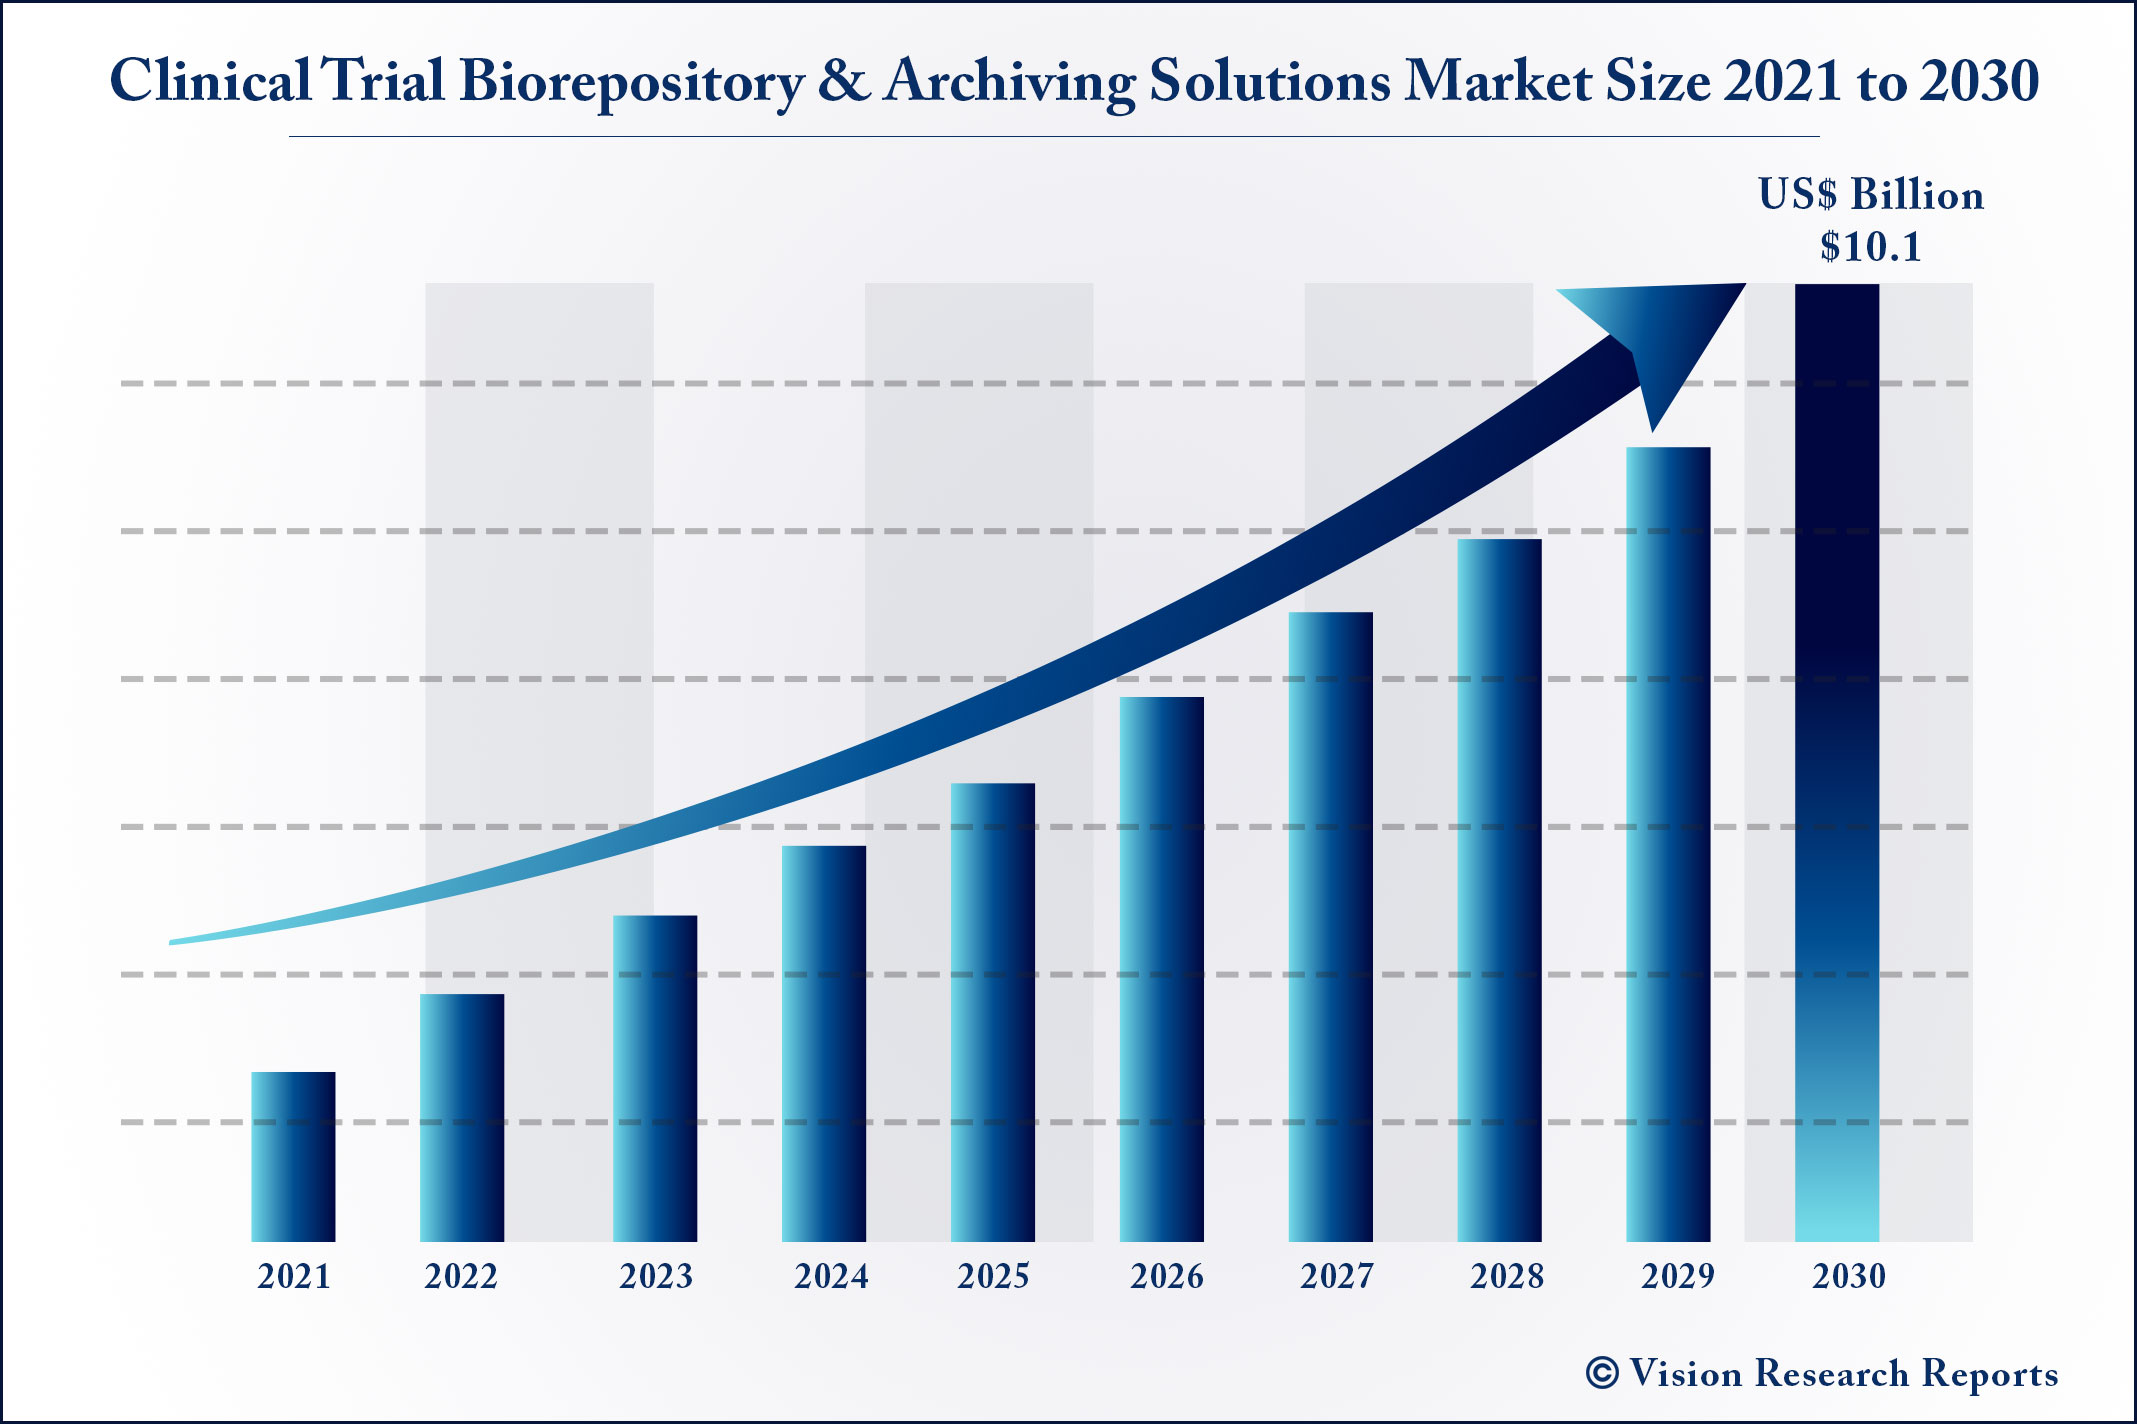 Clinical Trial Biorepository & Archiving Solutions Market Size 2021 to 2030